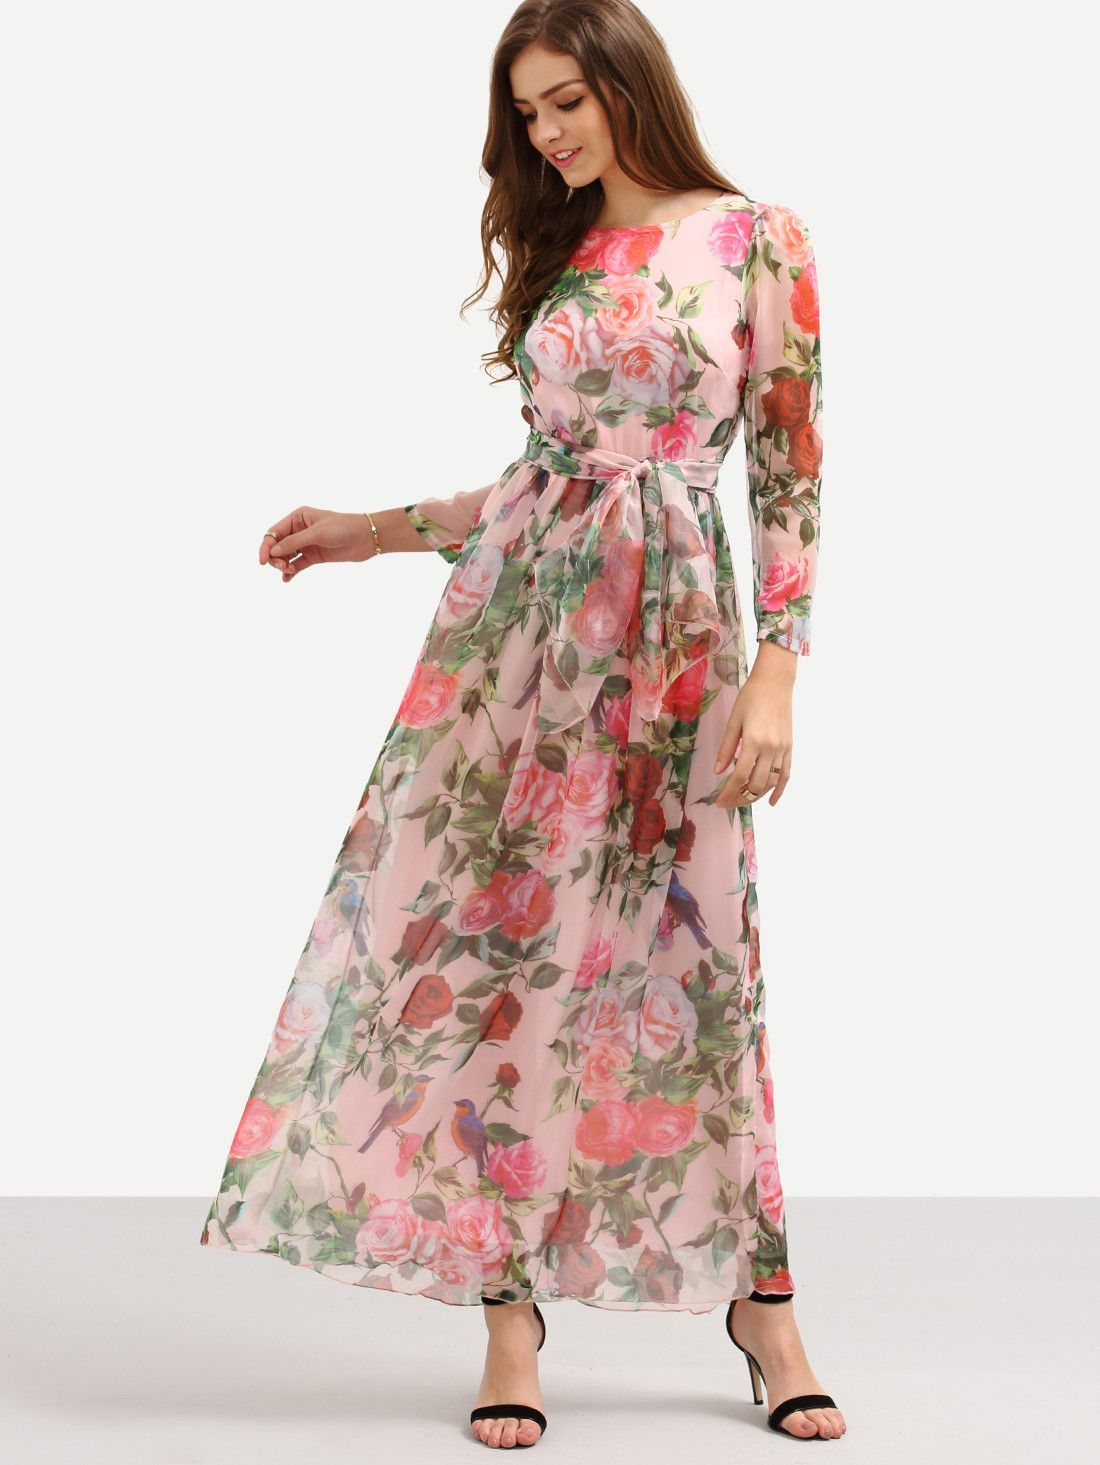 Pink rose print selftie chiffon maxi dress maxi styles summer